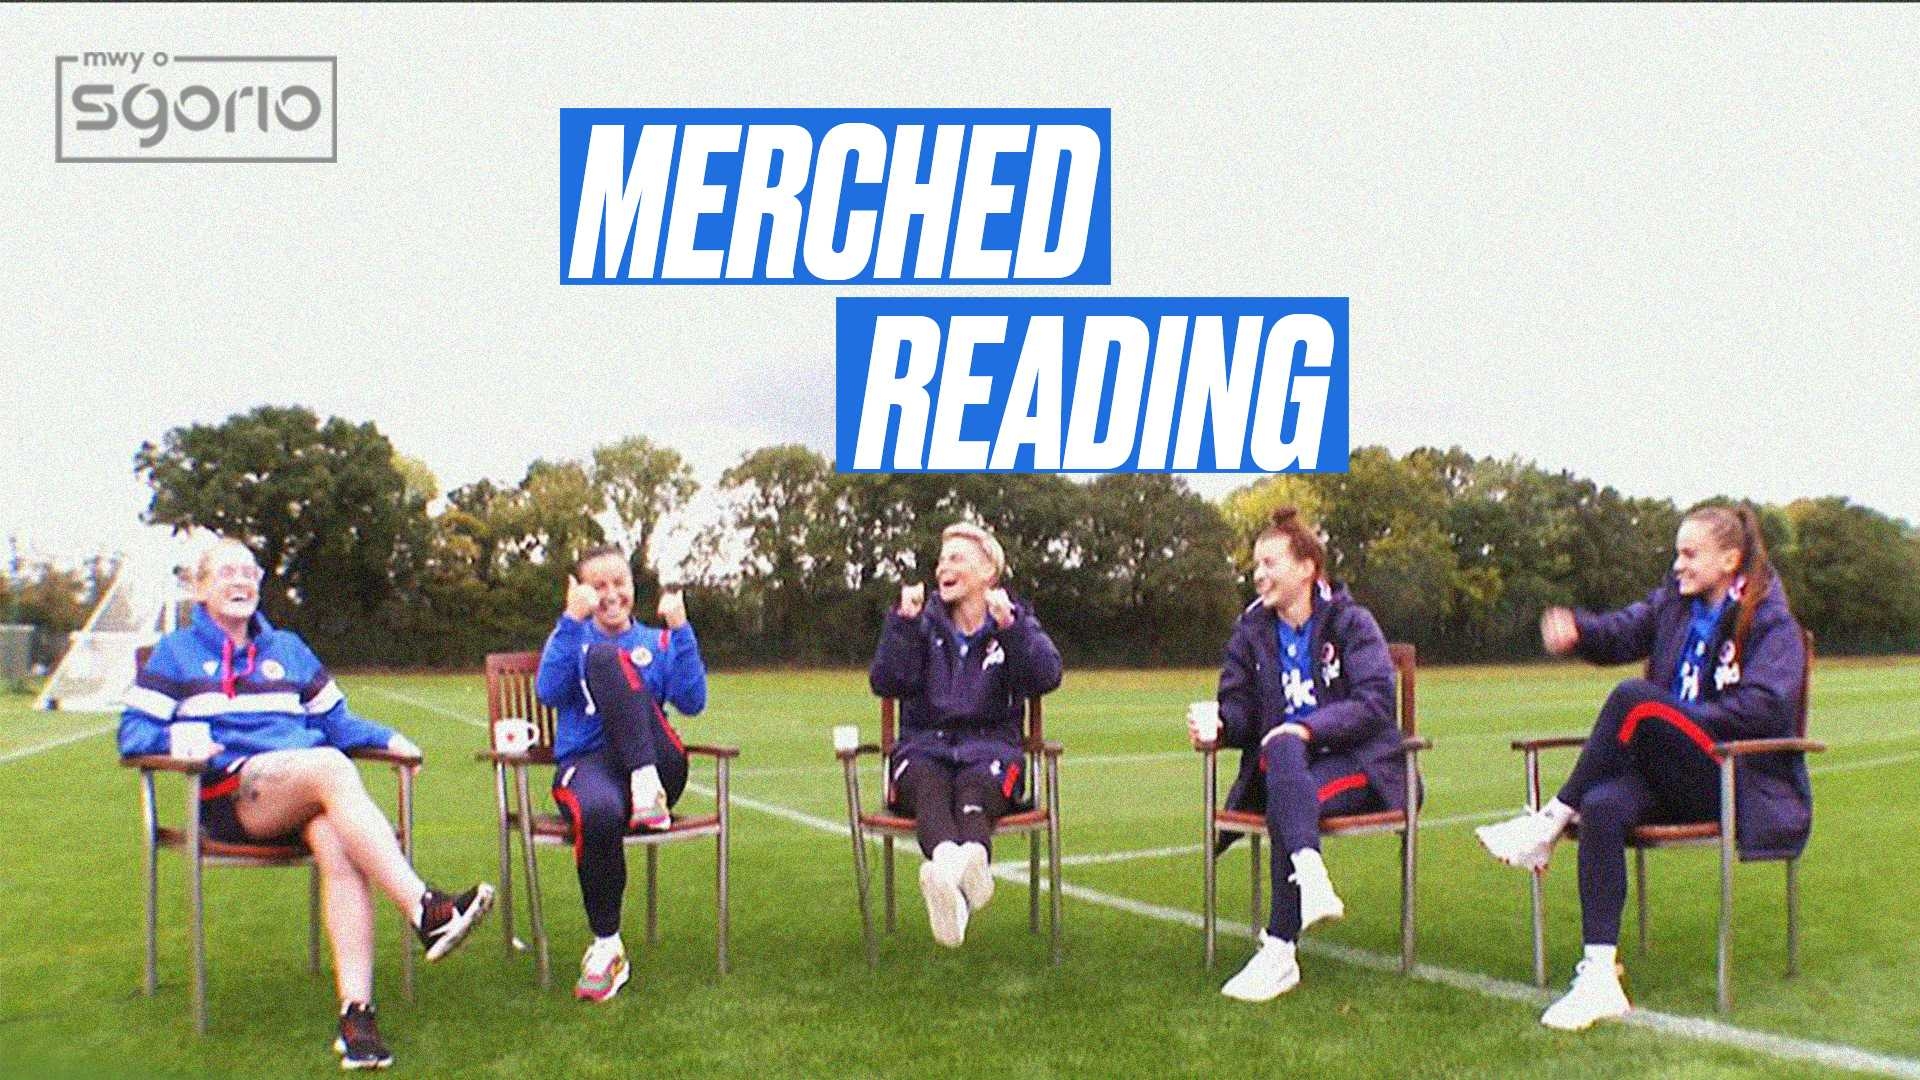 Merched Reading